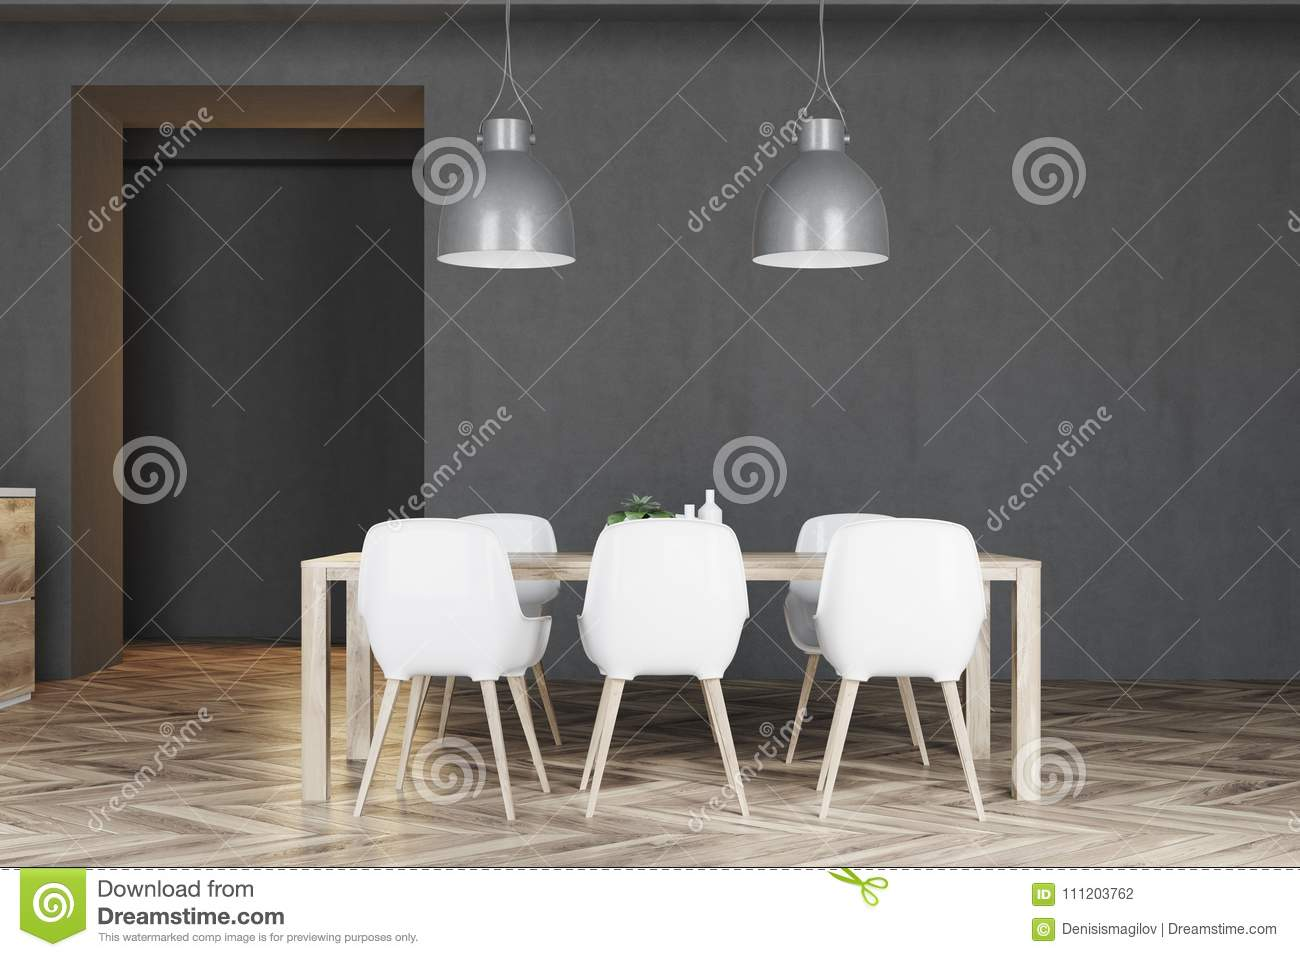 Marvelous Wooden Table With White Chairs Stock Illustration Inzonedesignstudio Interior Chair Design Inzonedesignstudiocom